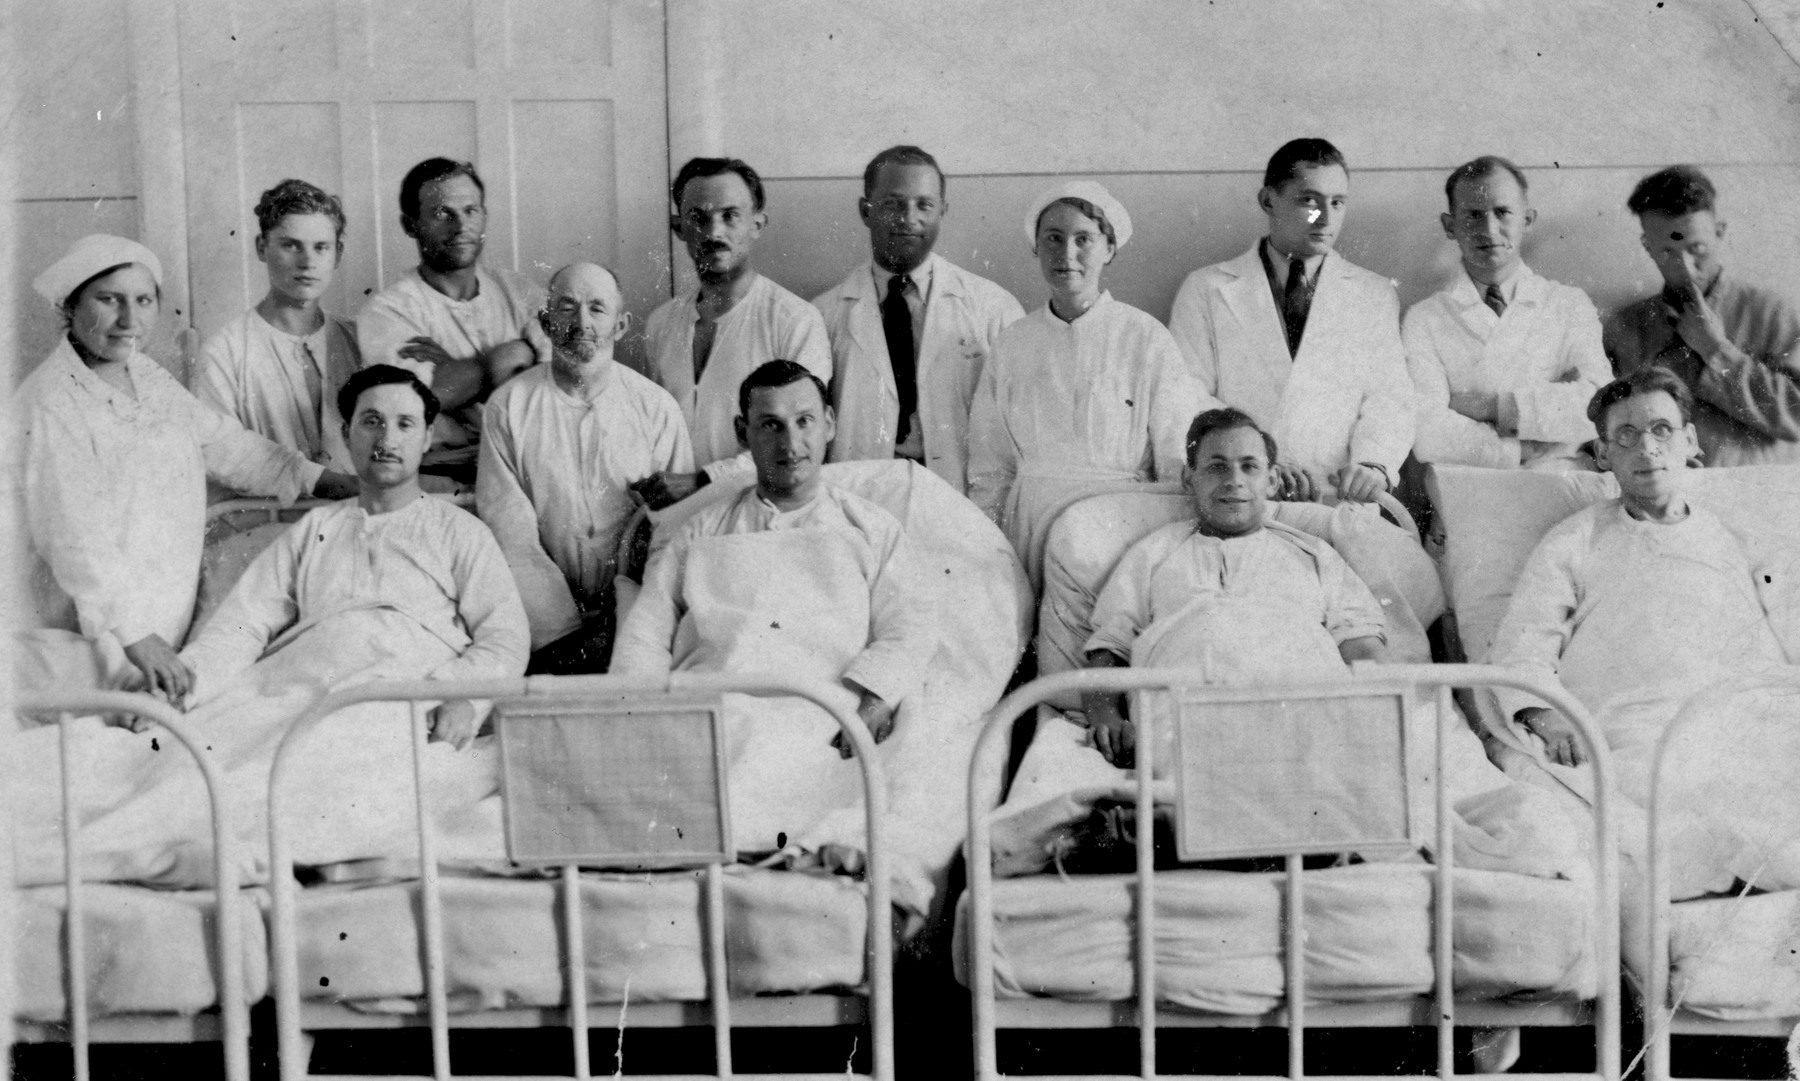 Doctors and nurses at the Jewish hospital in Biala Rawska pose with four of their patients who are lying in bed.